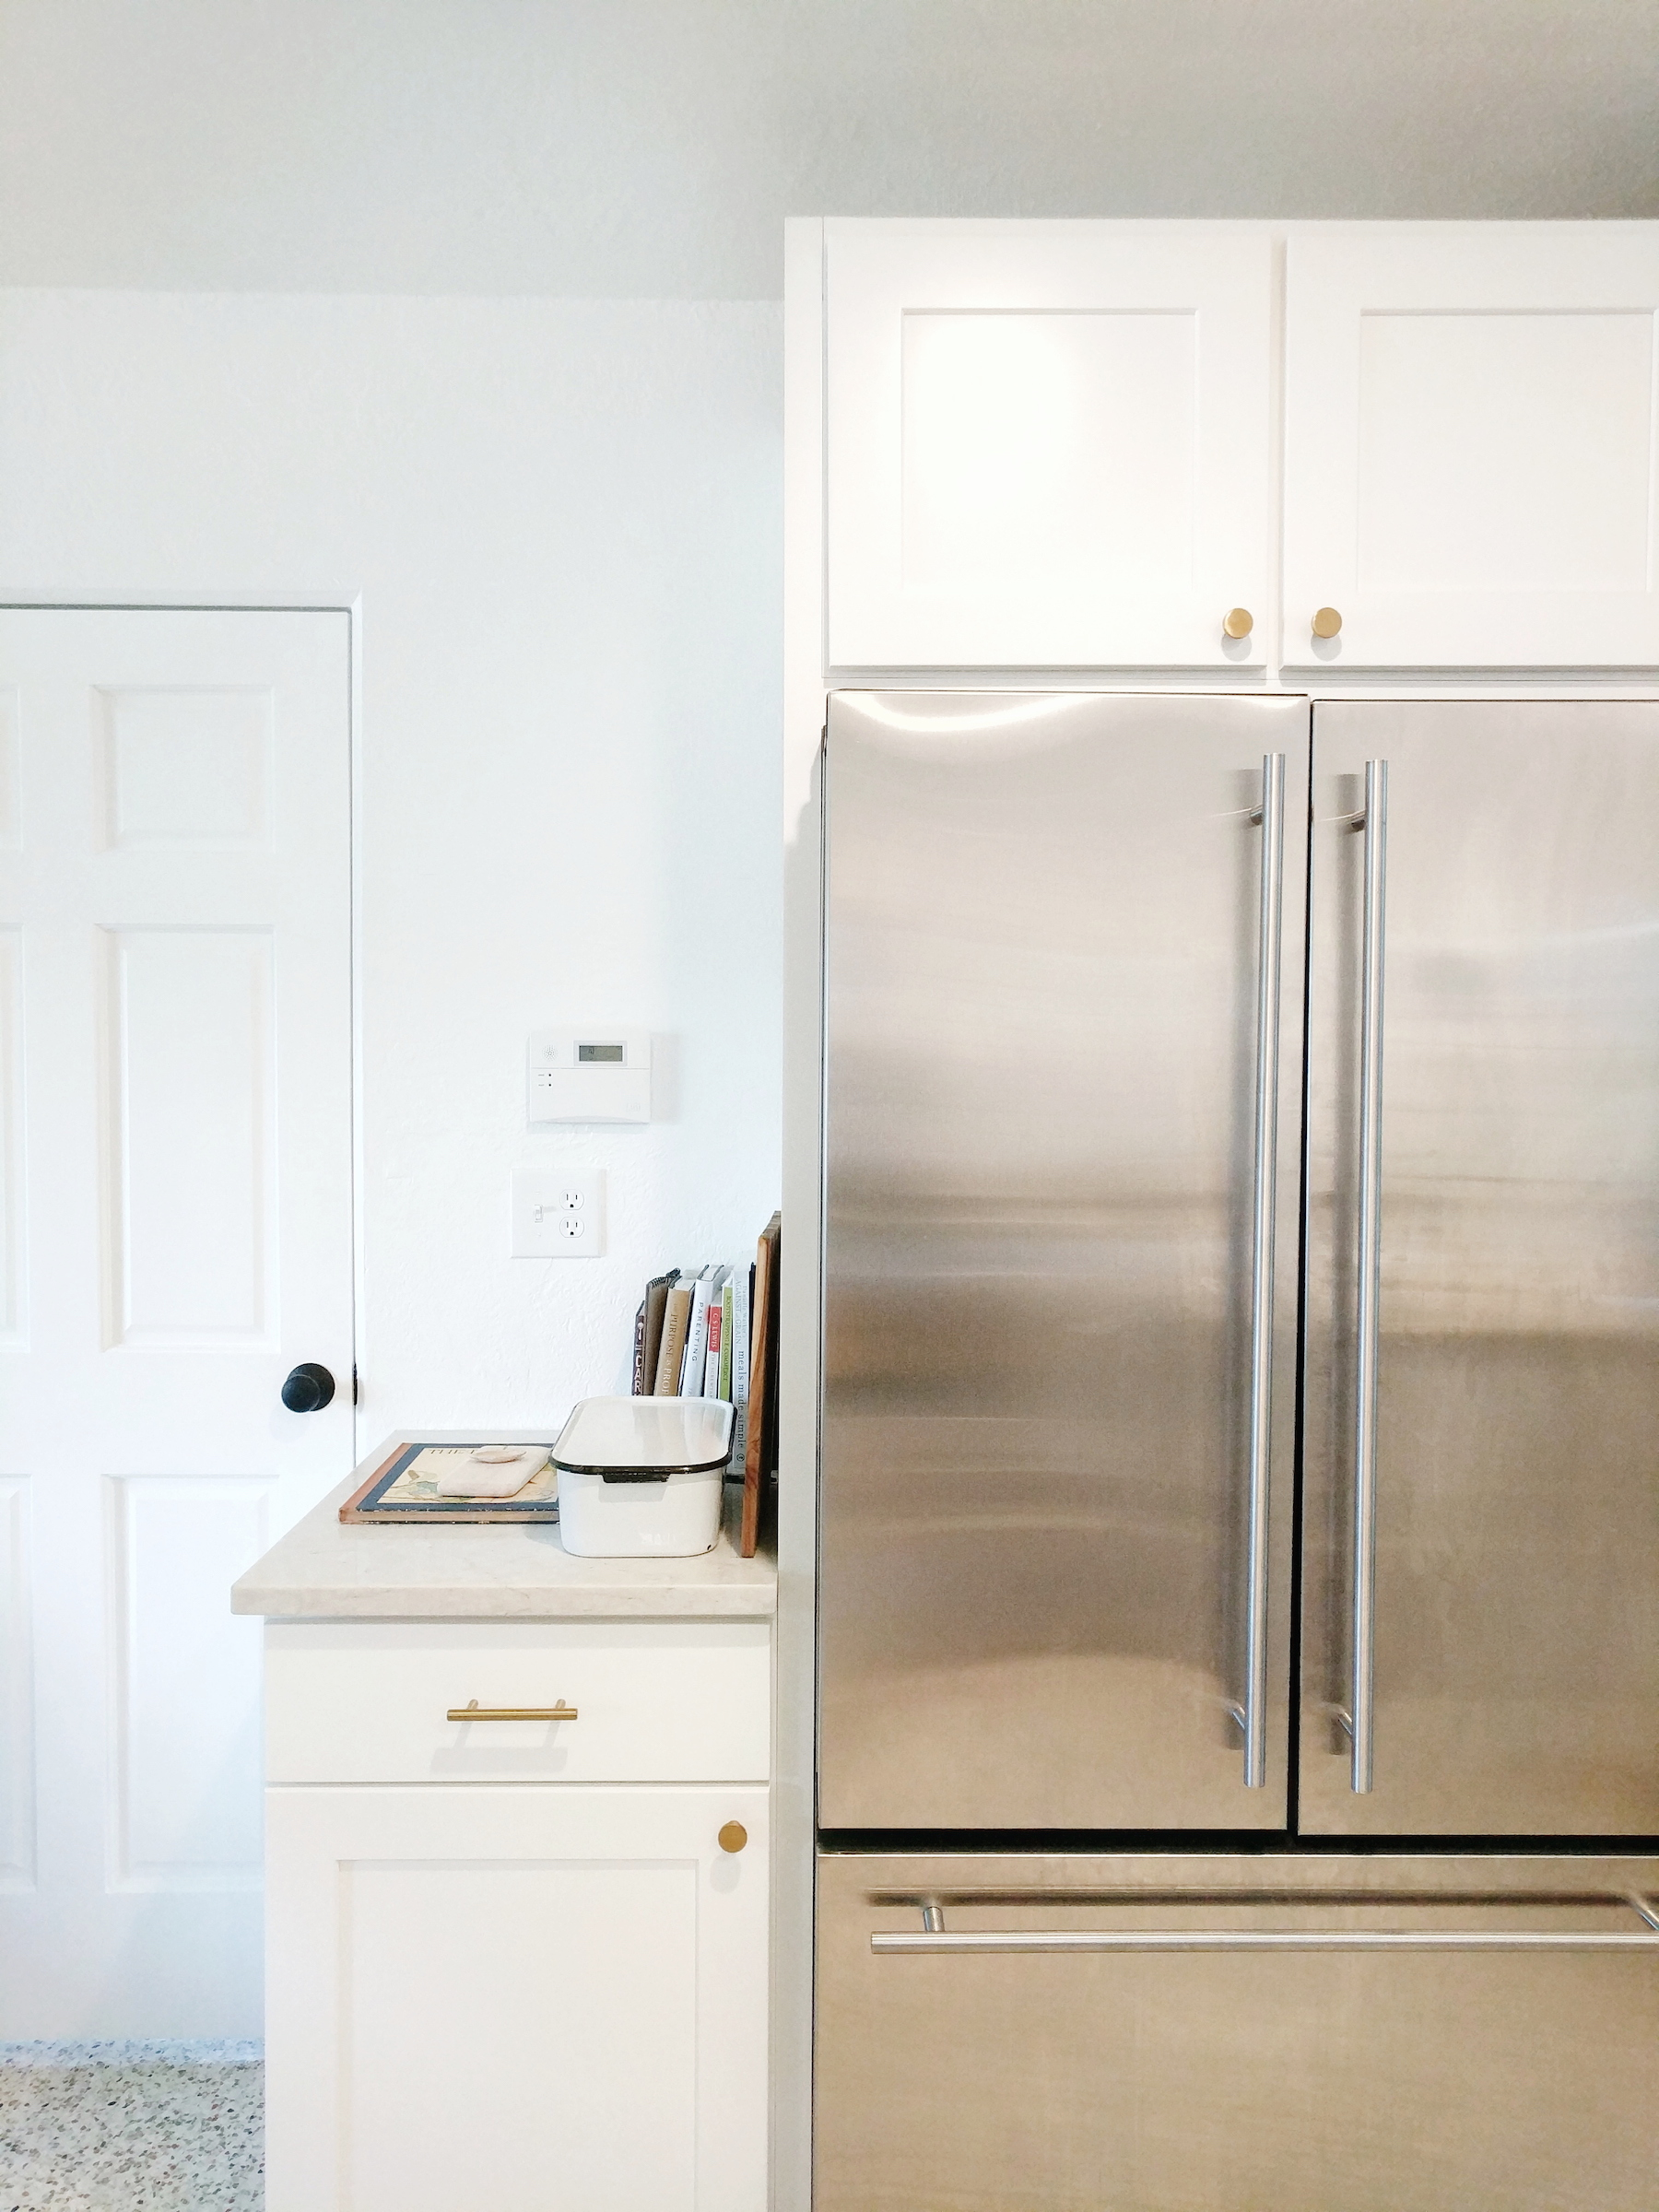 Kitchen refrigerator with cabinet